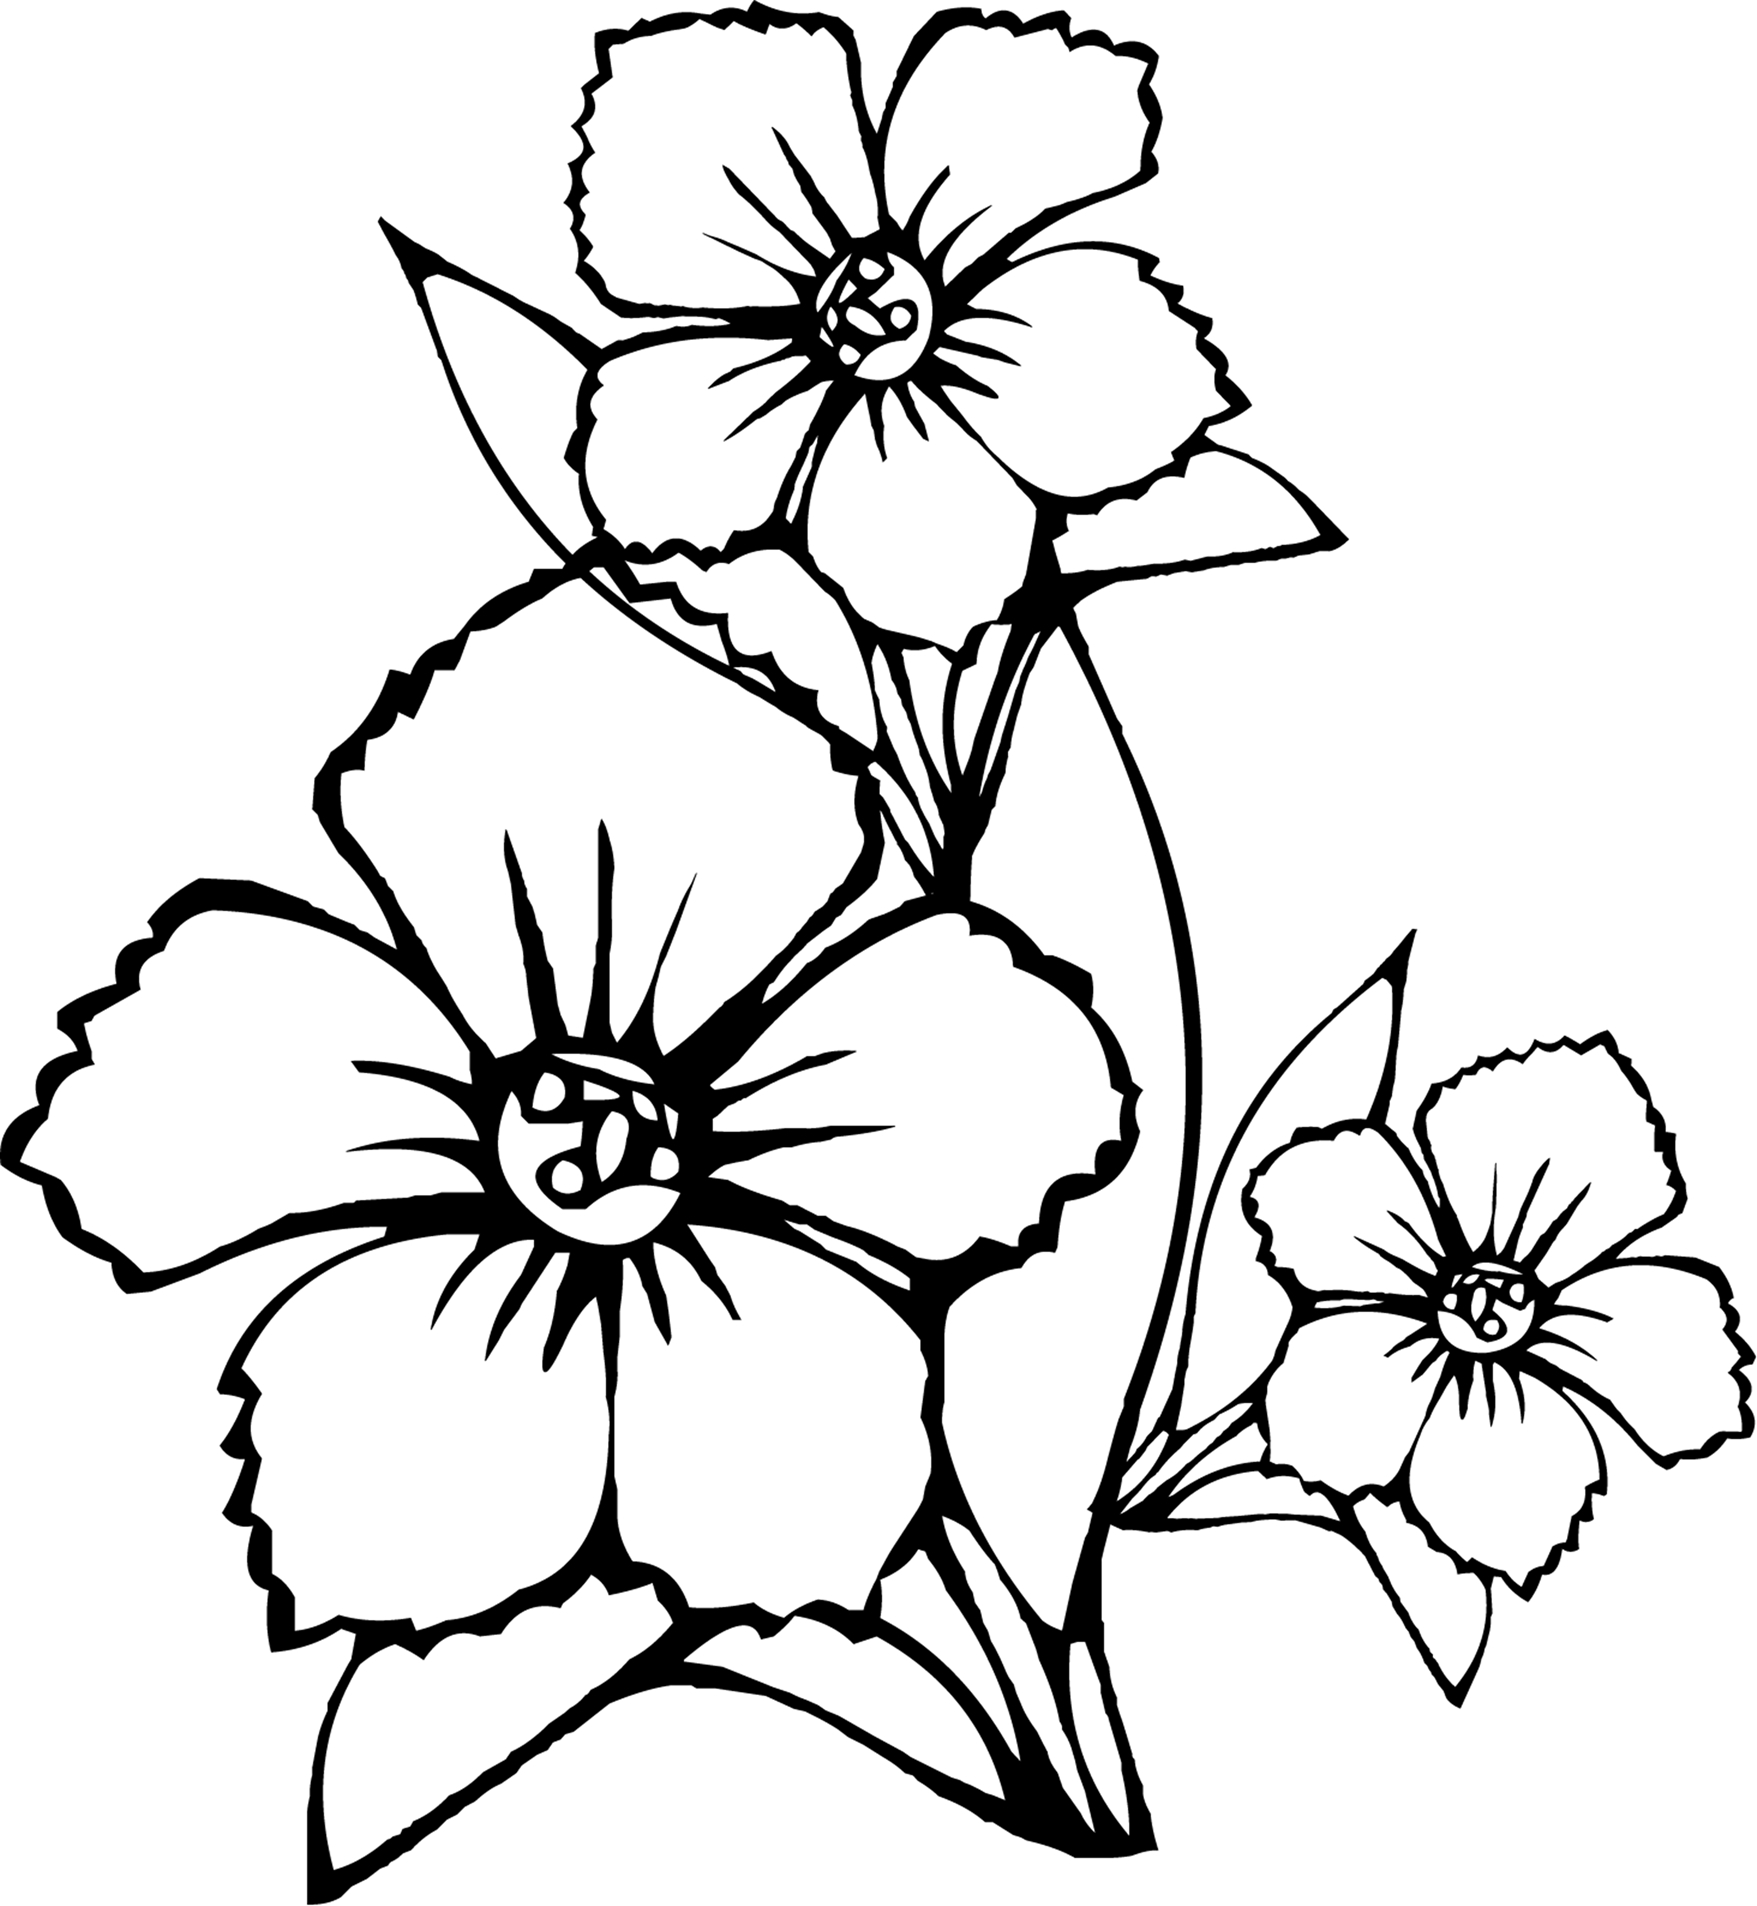 images of flowers to color free printable flower coloring pages for kids best color flowers of to images